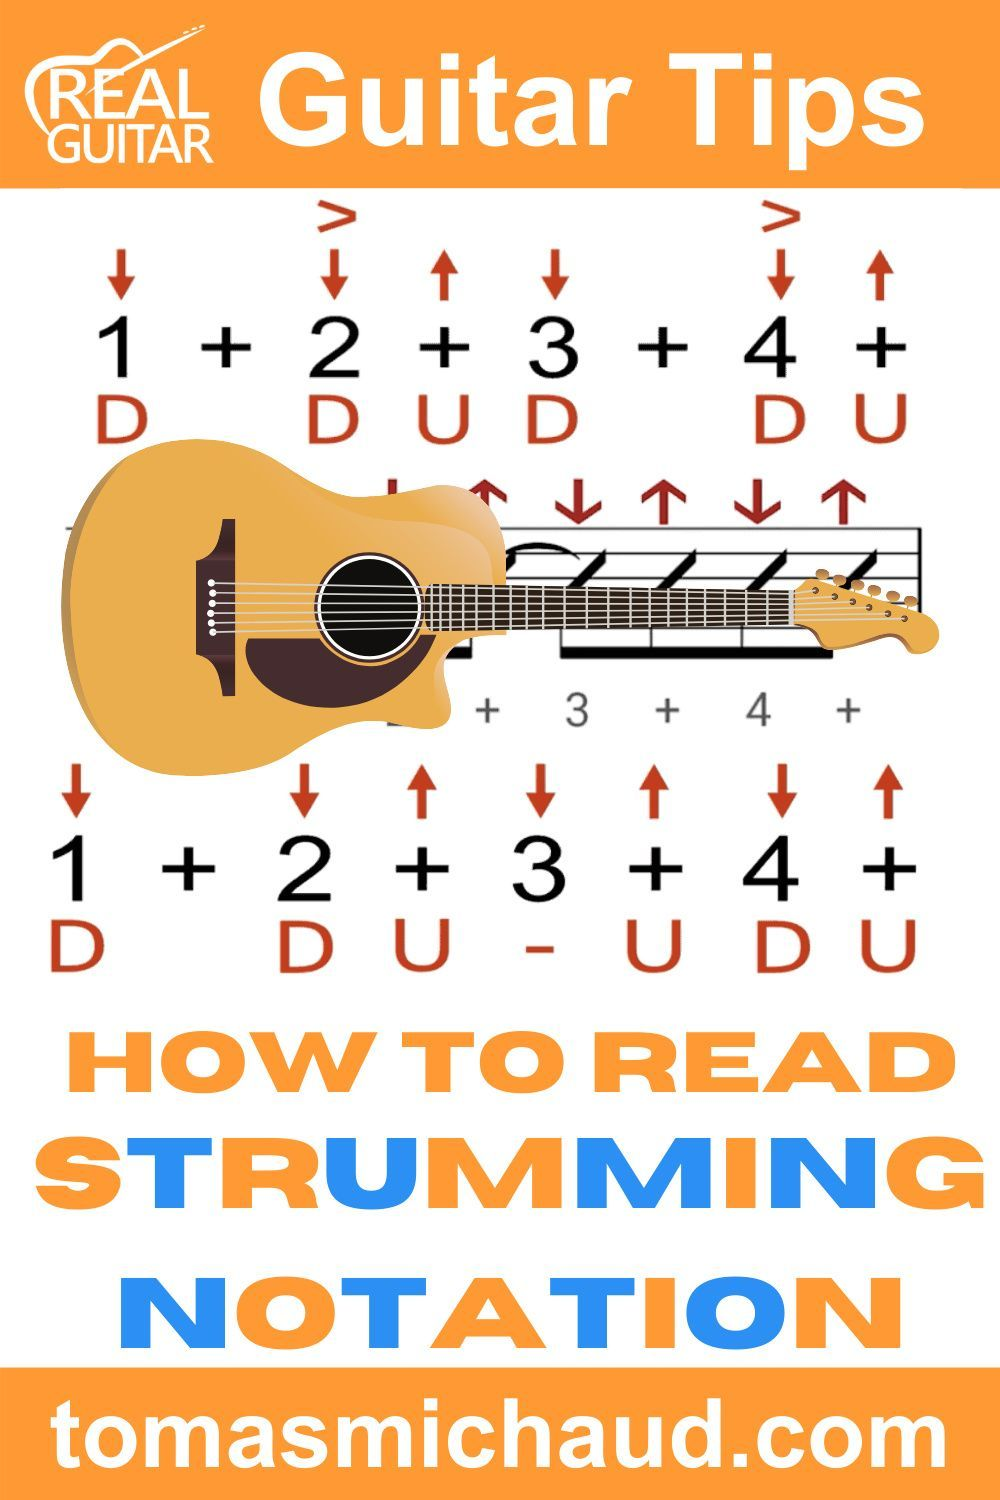 How To Read Strumming Notation Guitar Lessons For Beginners Notations Guitar Lessons Reading music notation for guitar